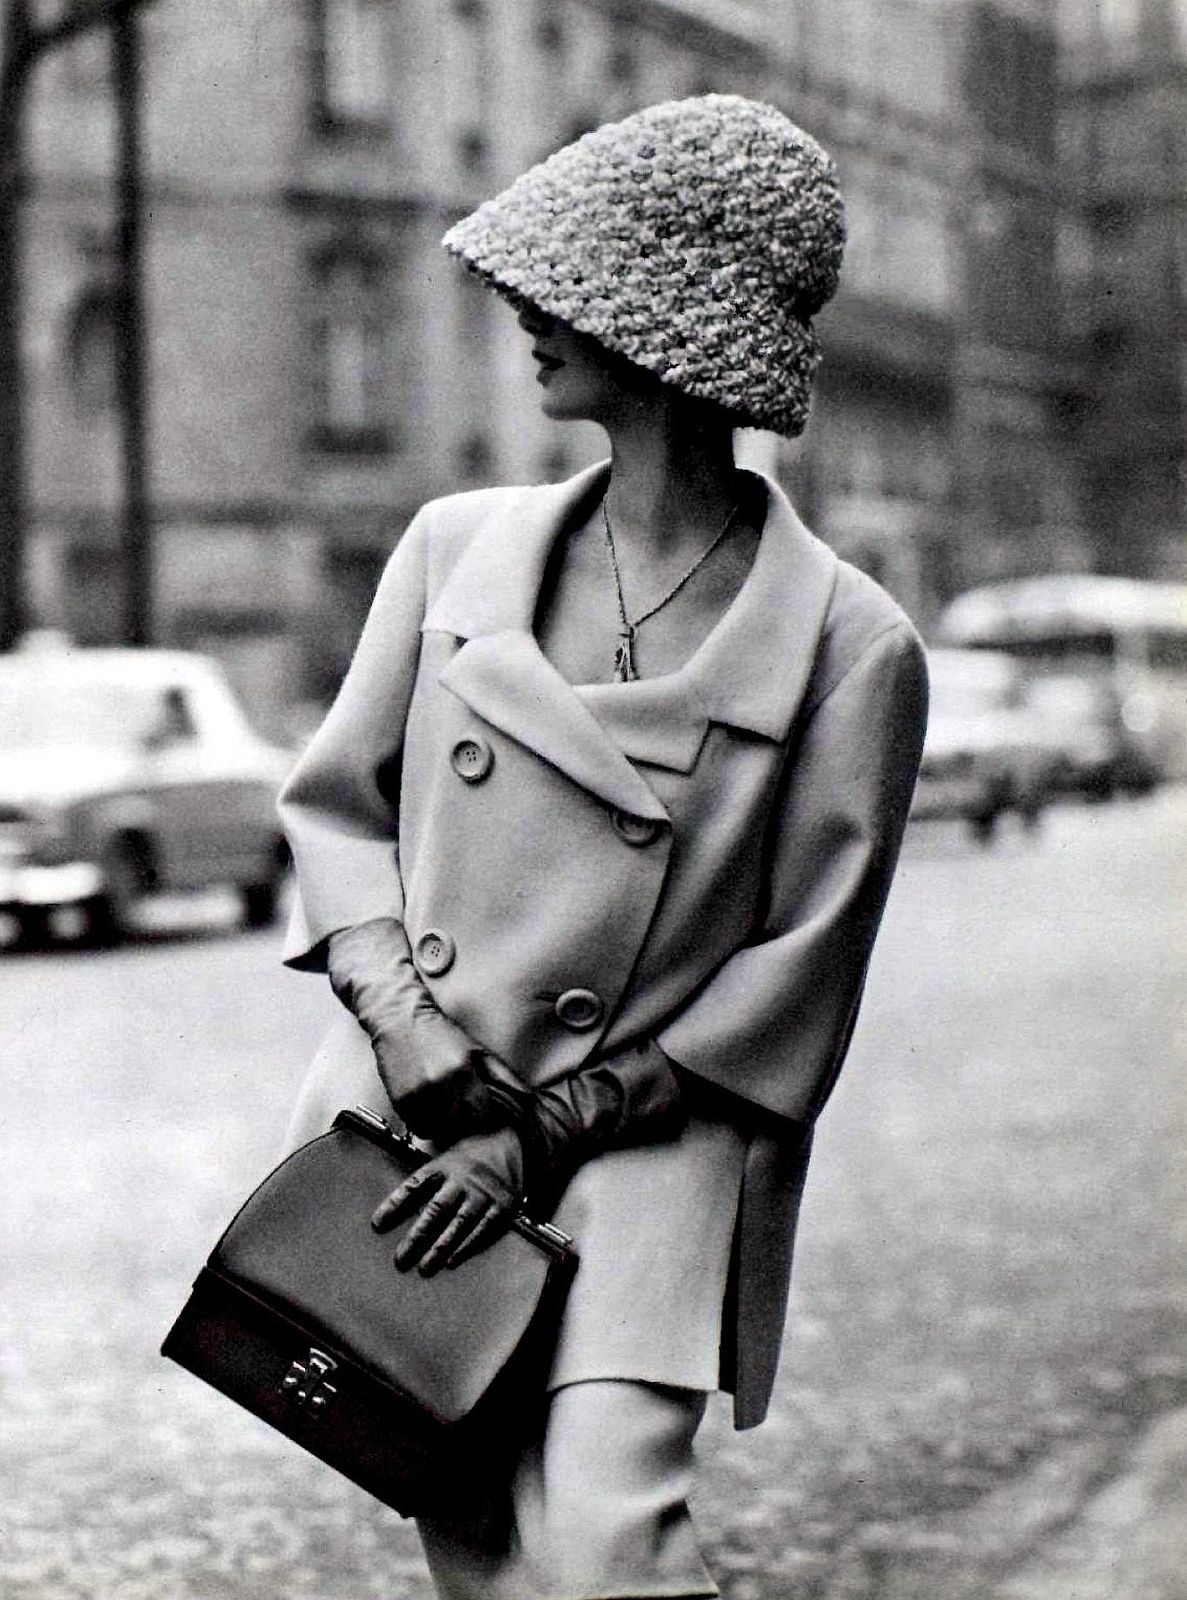 Model in double-breasted Shetland crême wool suit with longer,loose jacket, 3/4 sleeves by Jean Patou, gloves and purse by Hermès, photo by Georges Saad, Paris, 1962